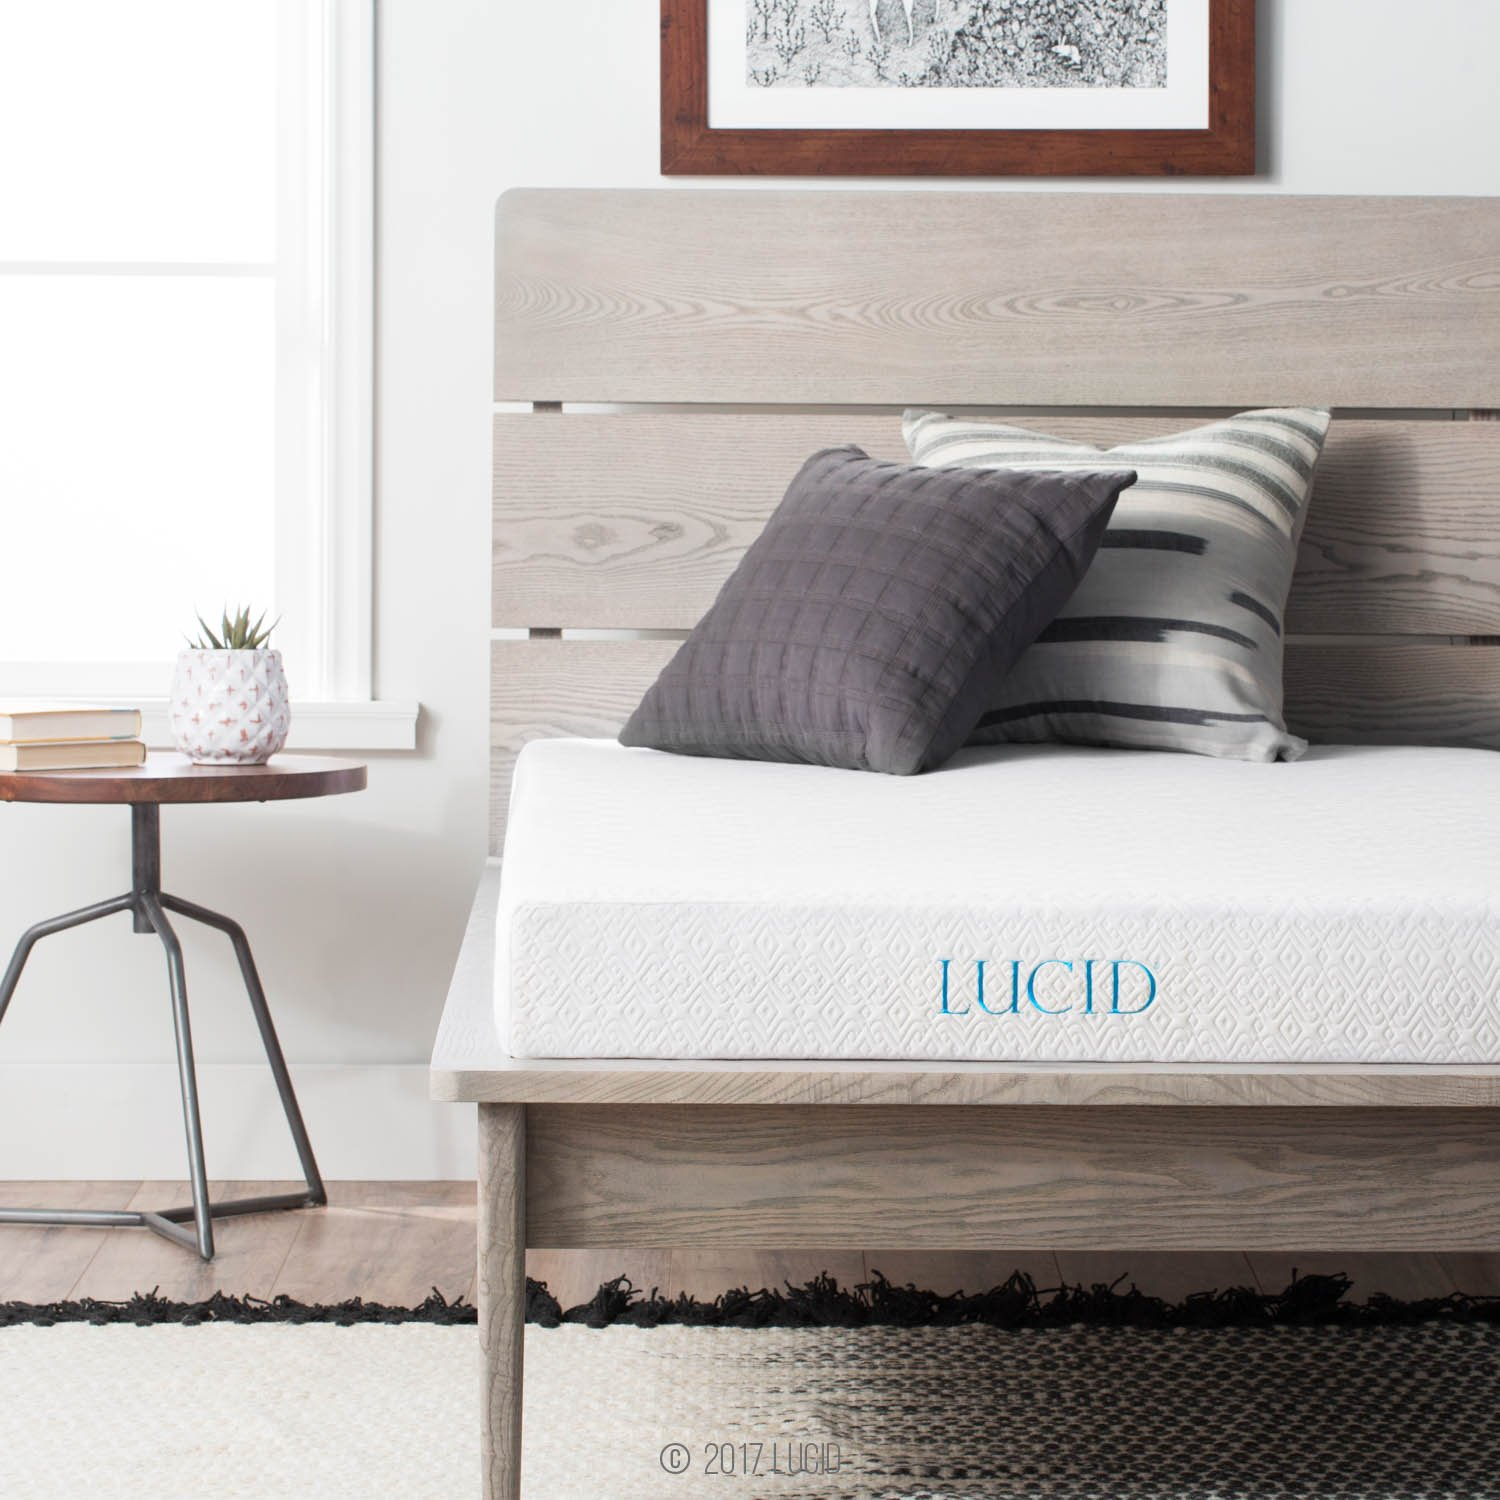 Amazon.com: LUCID 5 Inch Gel Memory Foam Mattress - Dual-Layered -  CertiPUR-US Certified - Firm Feel - Queen Size: Kitchen & Dining